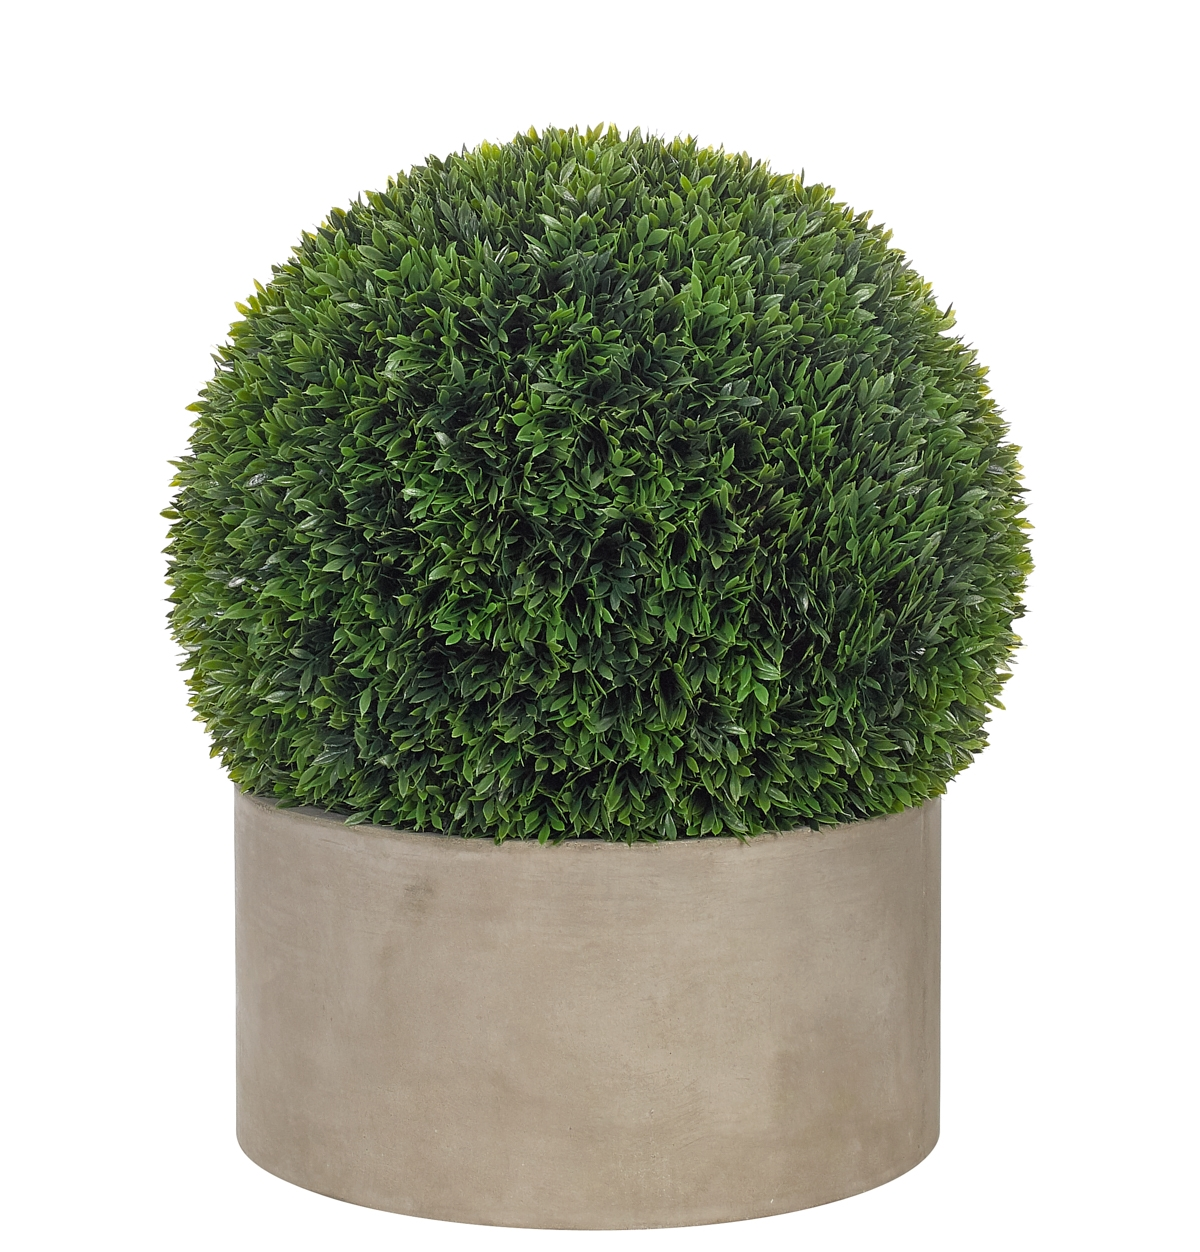 "UV rated and suitable for outdoor use! | Boxwood Ball, Bowl Terracotta Grey Finish, 14wx19.5""h"